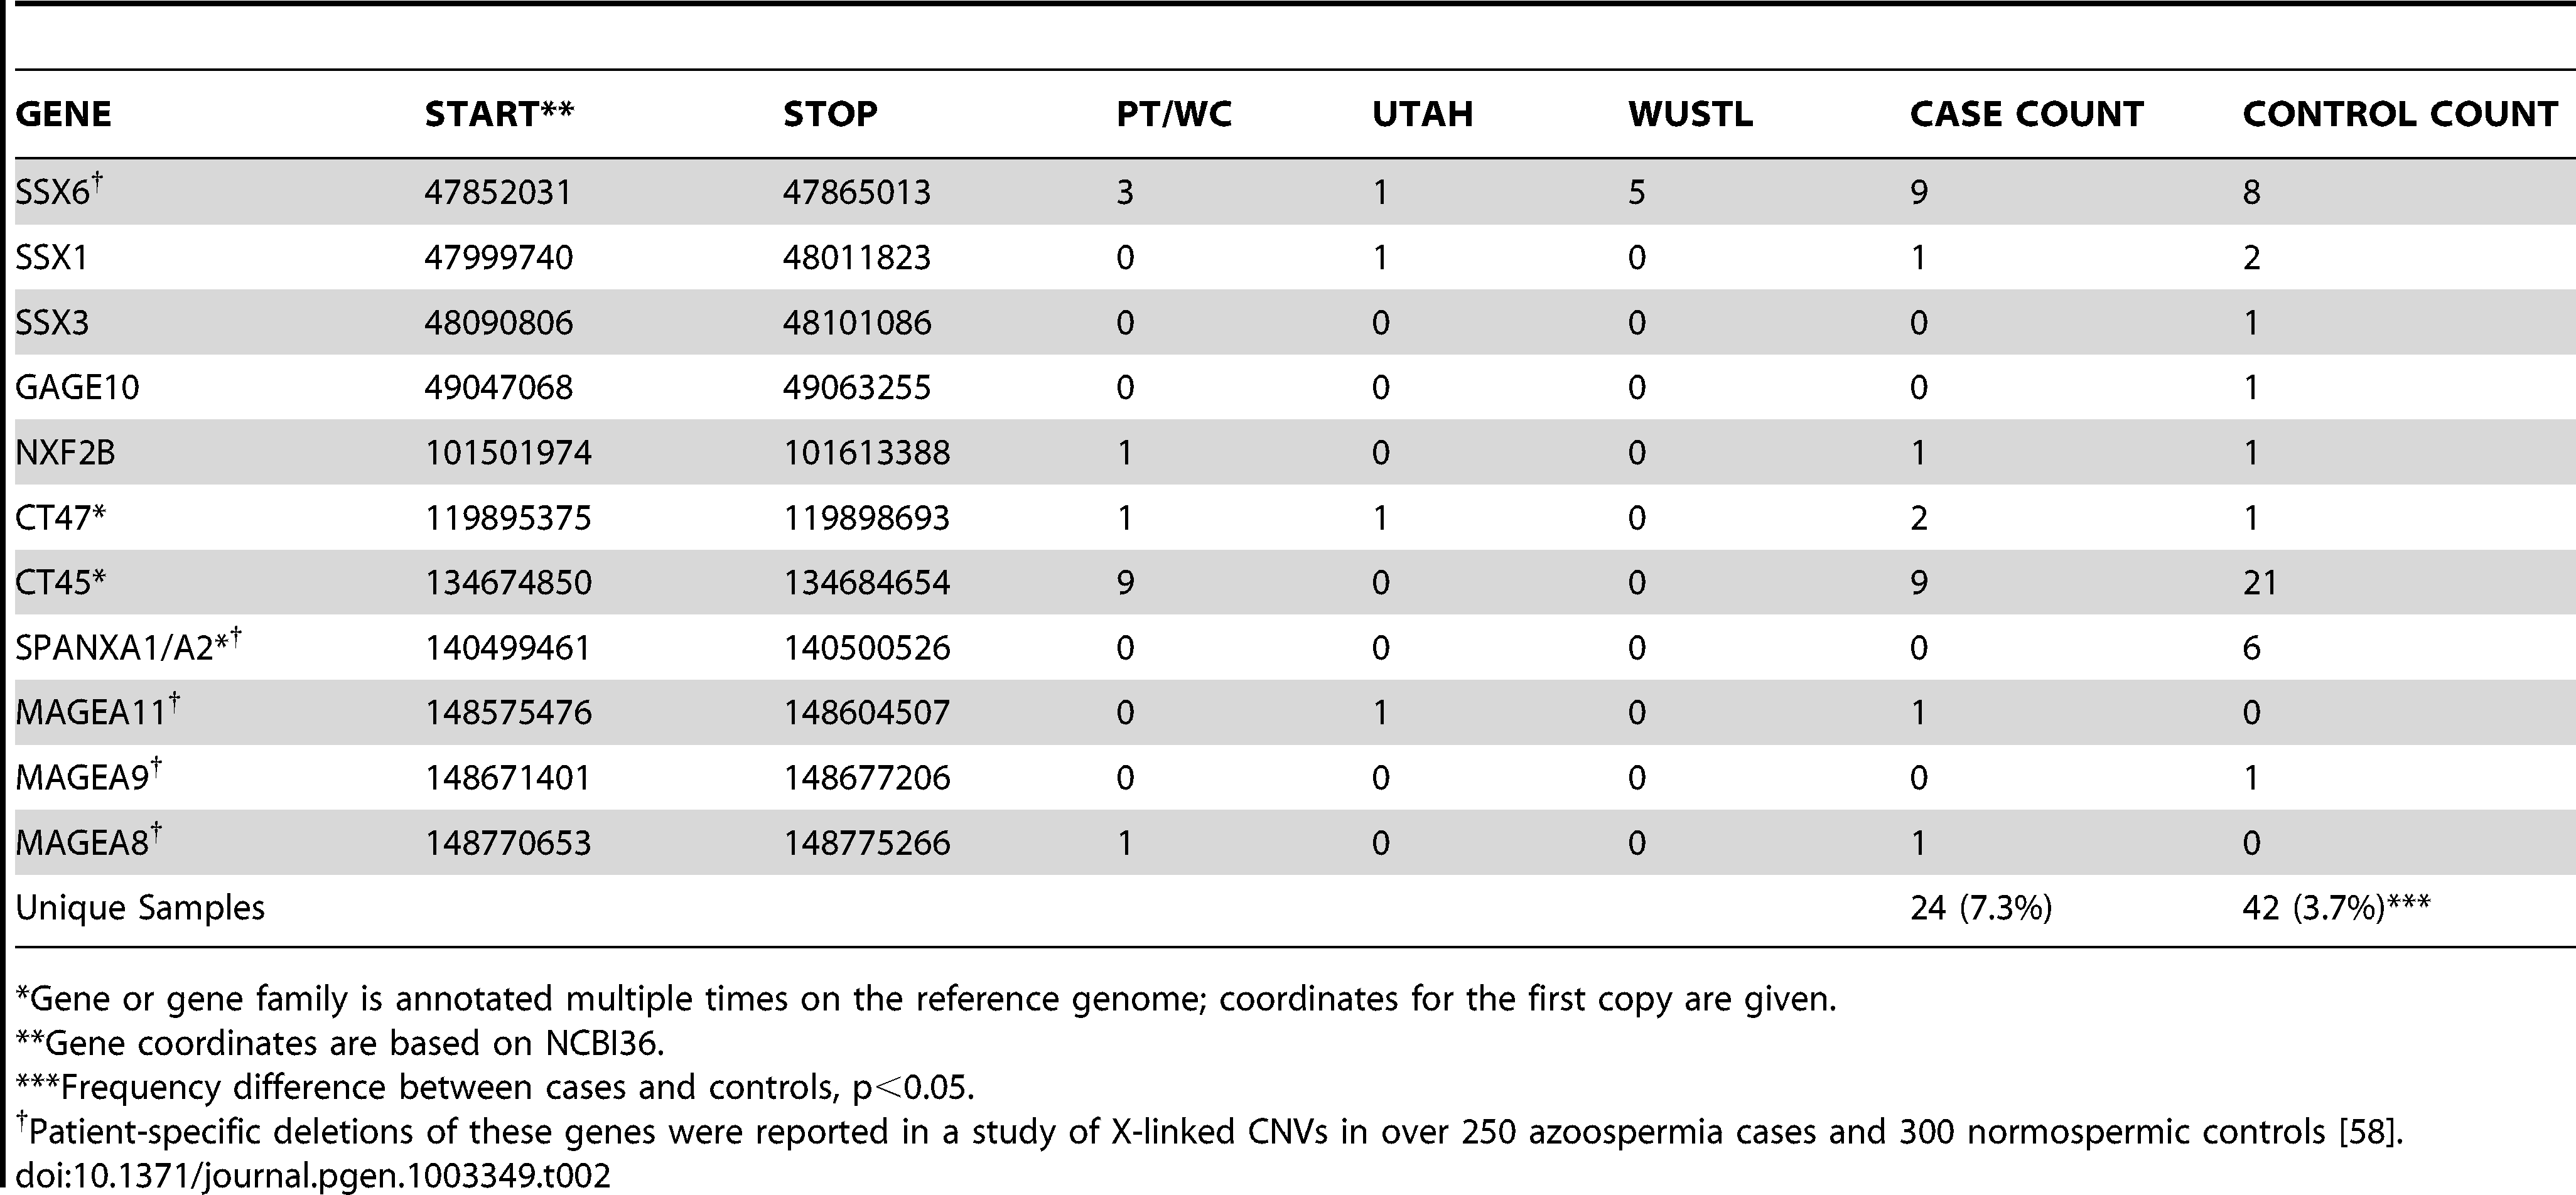 X-linked cancer-testis antigens deleted in case and control samples.